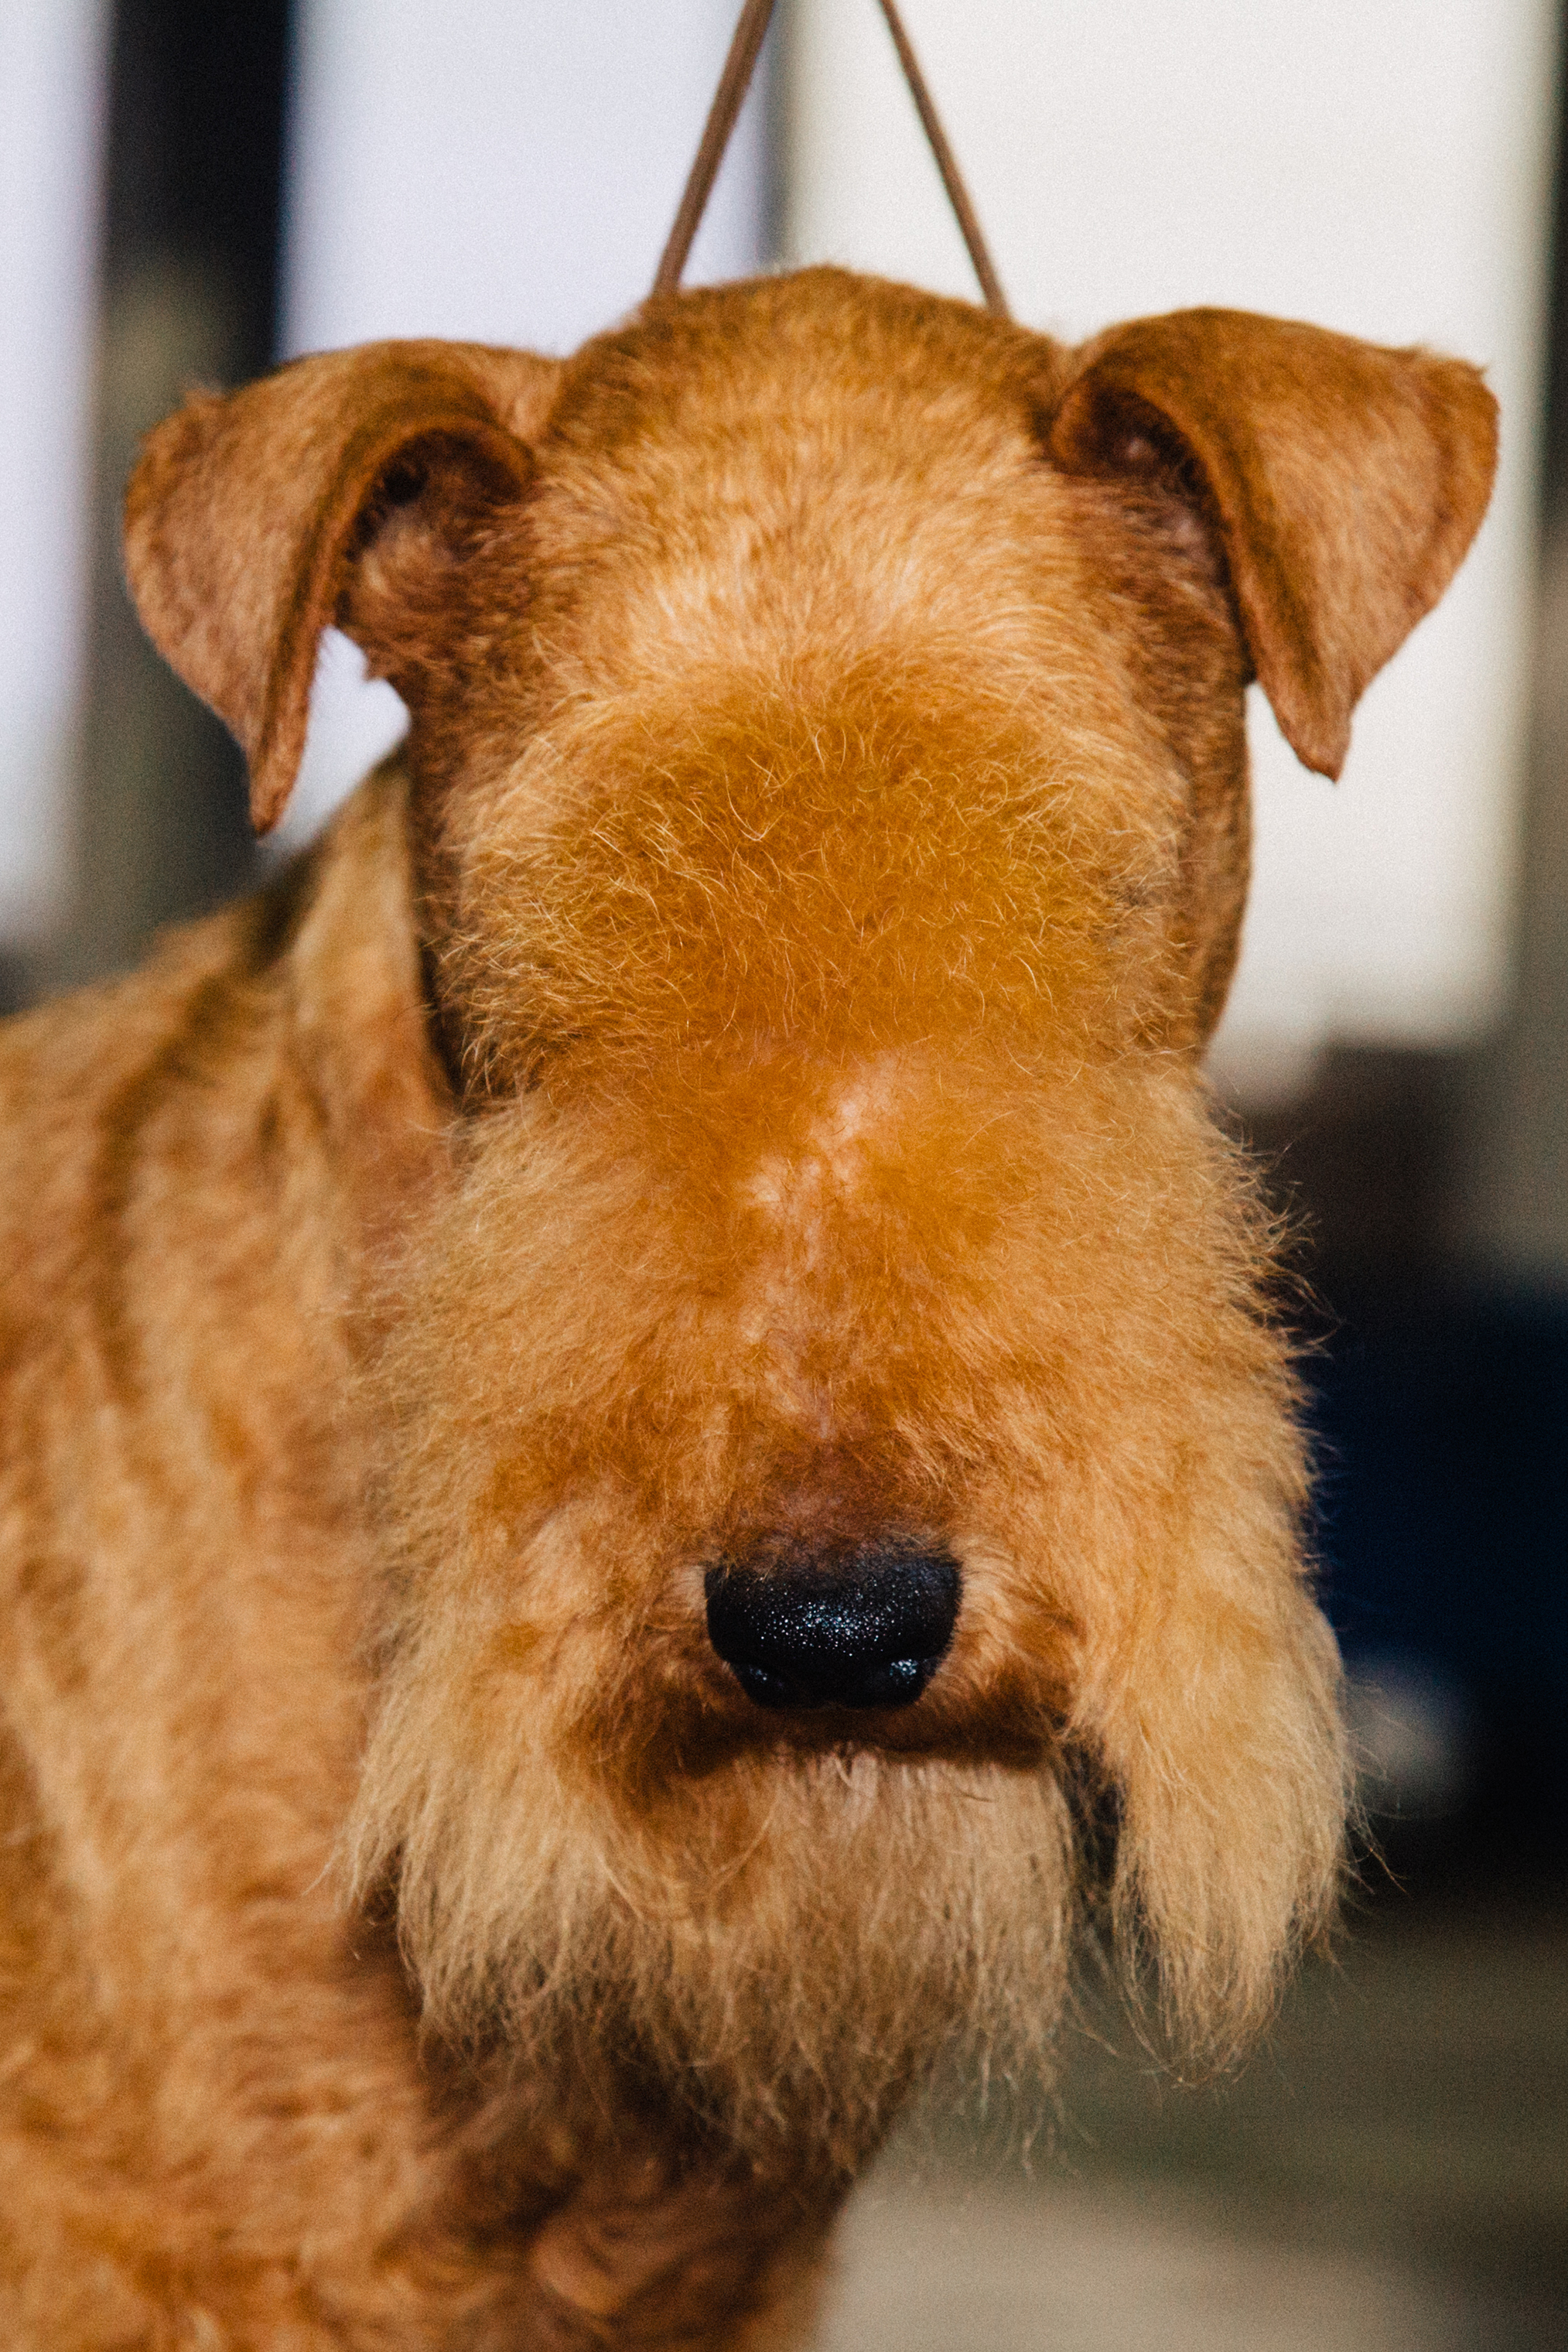 The Lakeland Terrier, a hypoallergenic dog originally bred in England, was one of dozens of terrier categories at Westminster